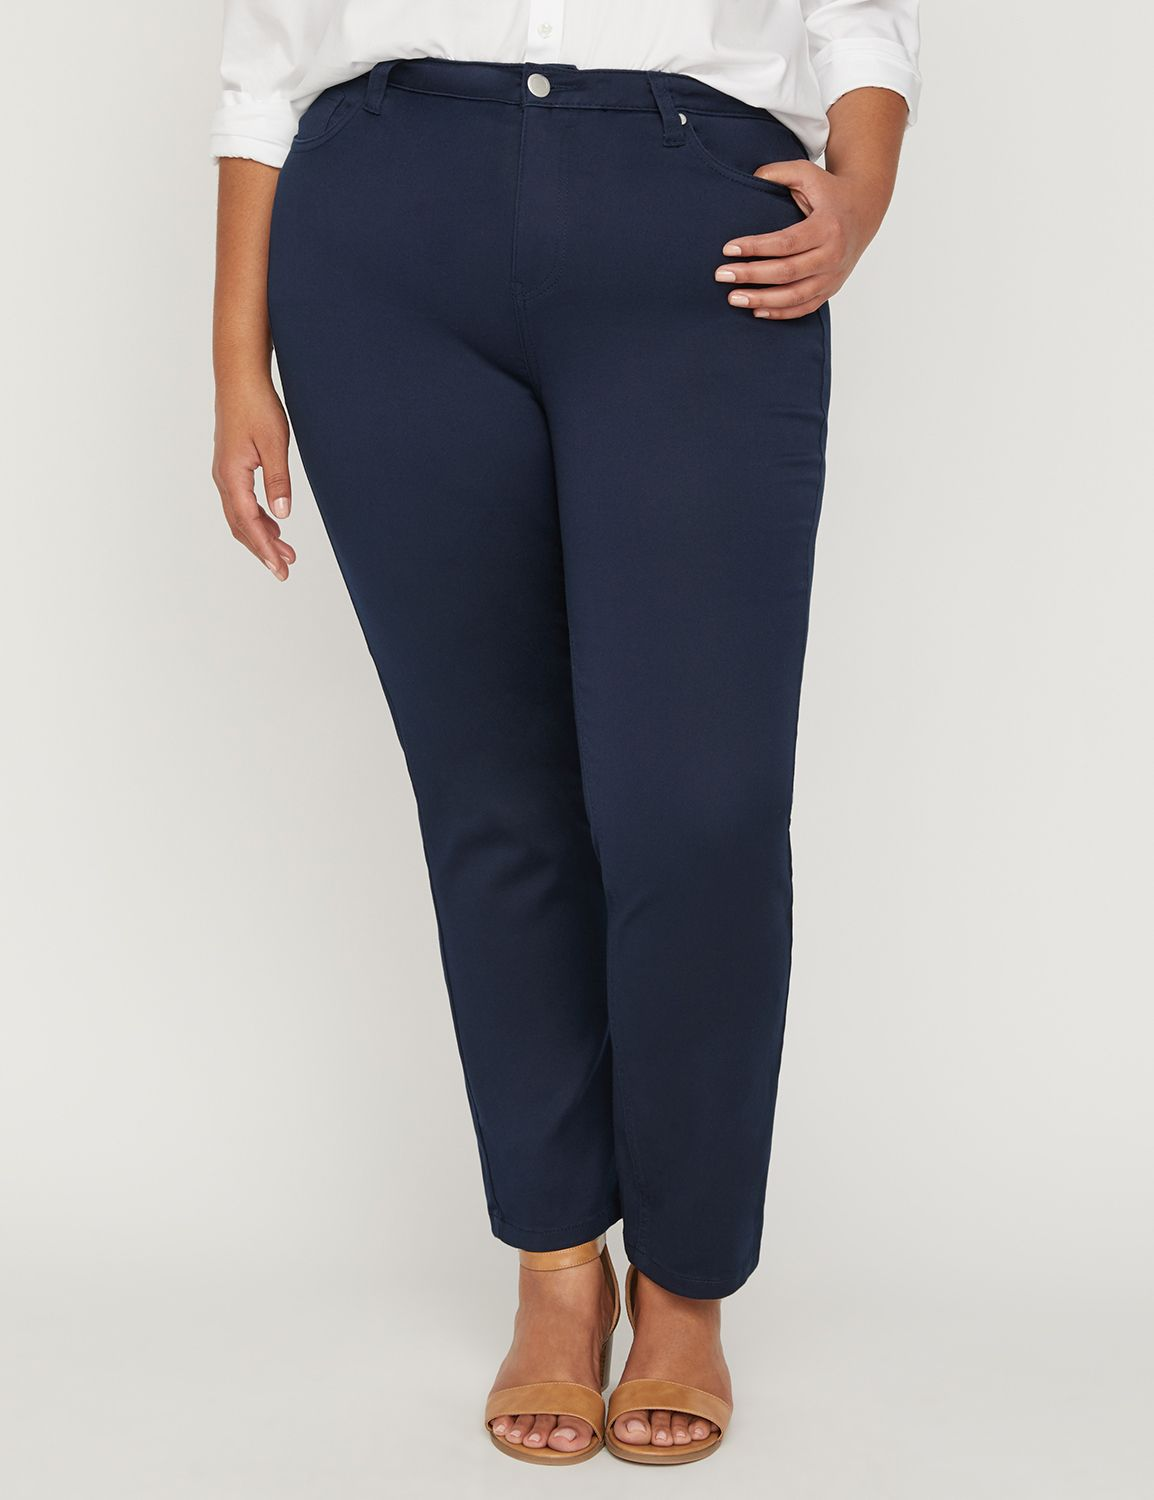 Modern Sateen Stretch Pant Done MP-300083366